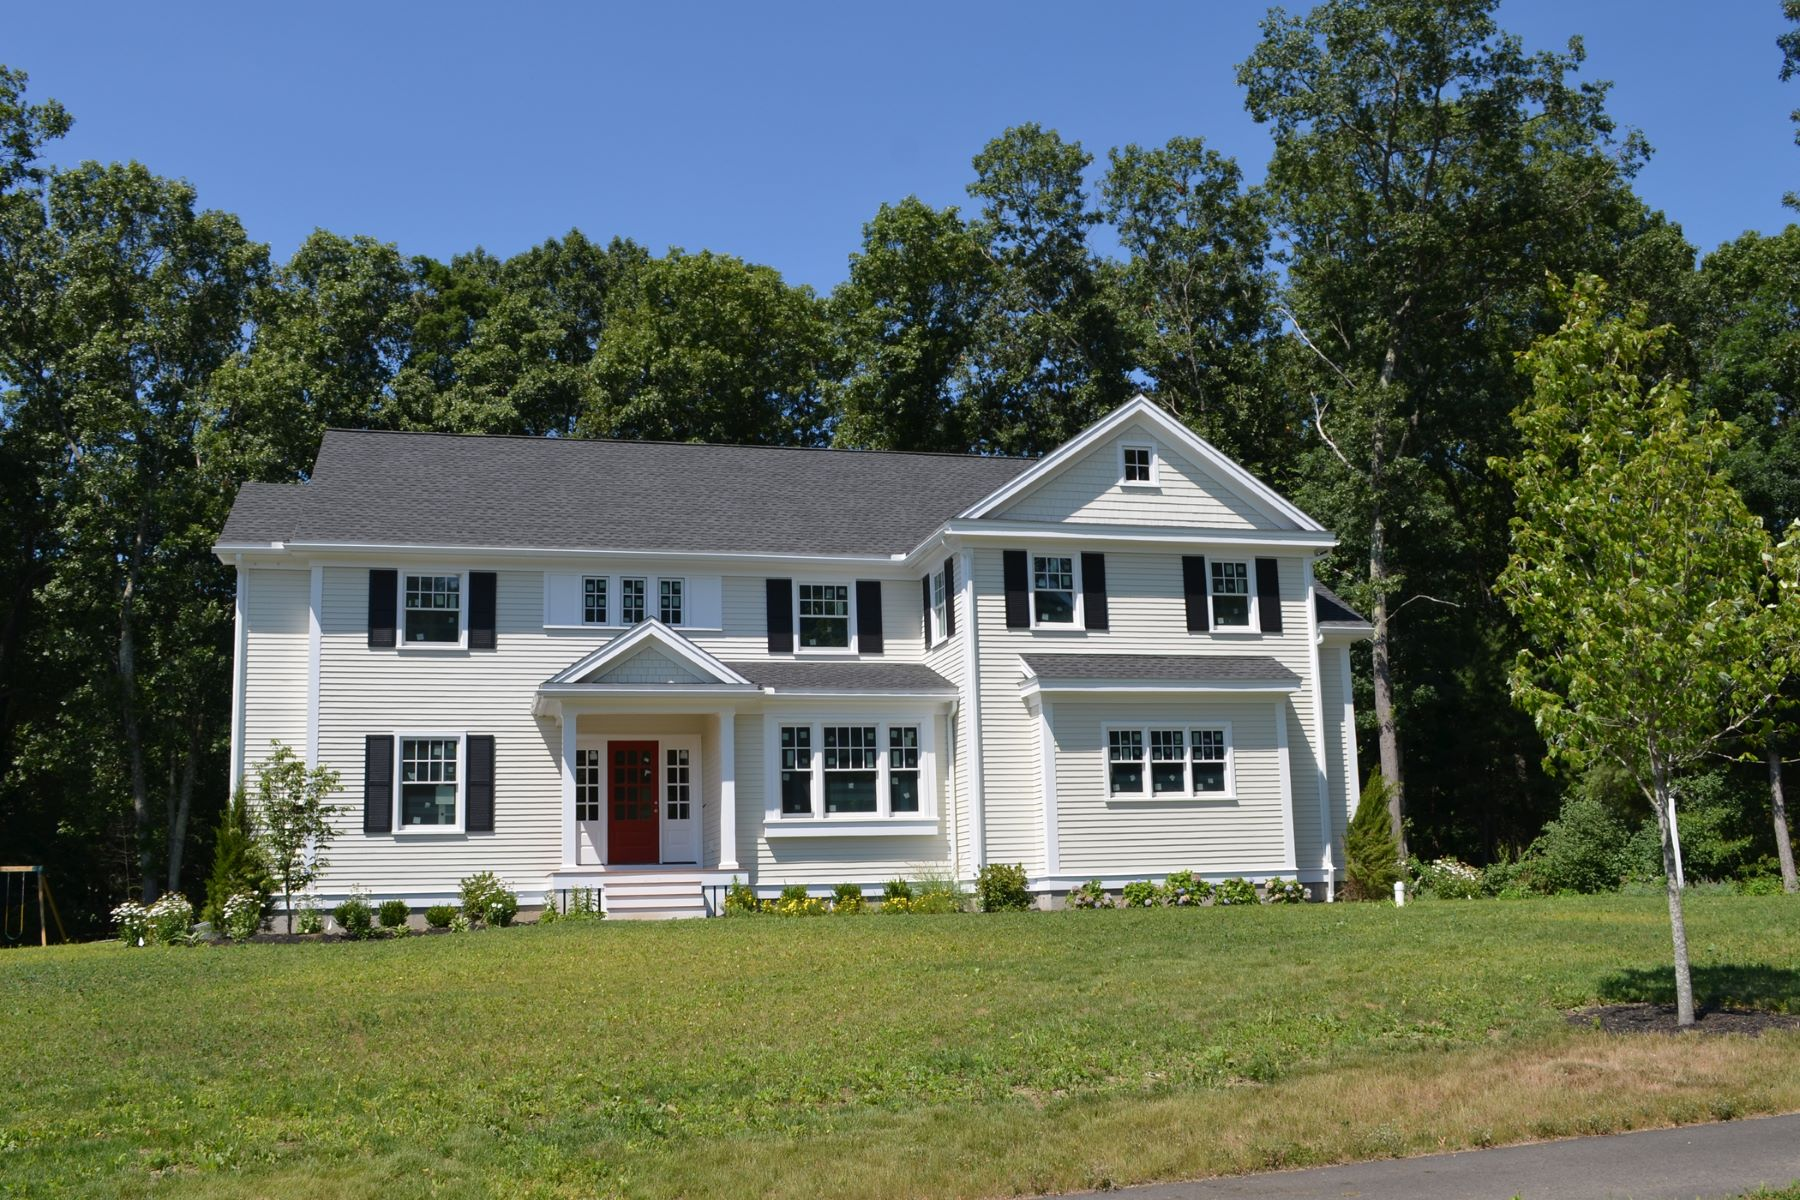 Single Family Home for Sale at Lovely Colonial at Monsen Farm Lot 7 Monsen Road Concord, Massachusetts, 01742 United States